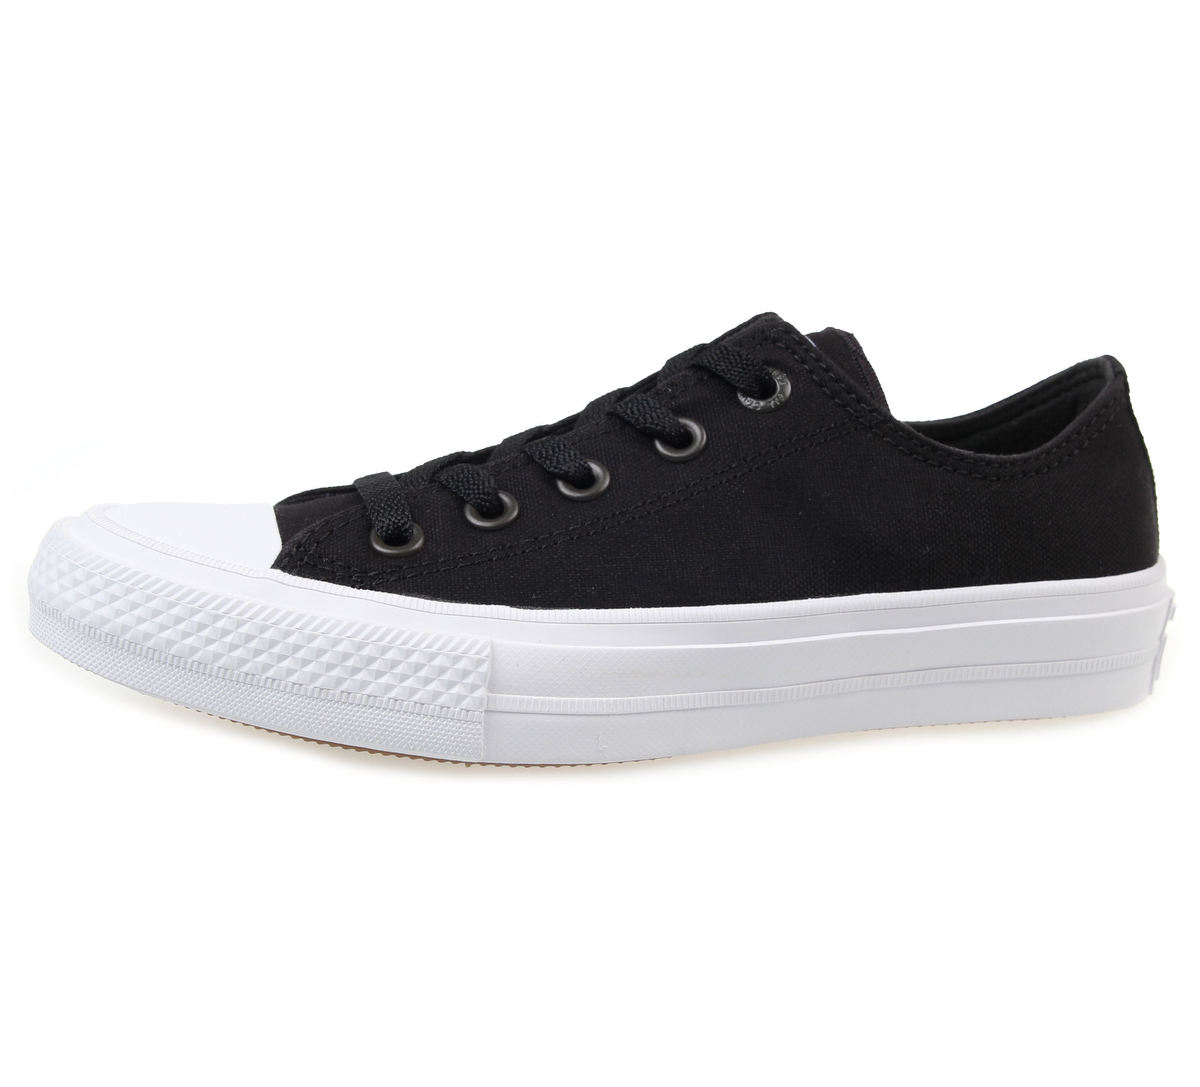 boty CONVERSE - Chuck Taylor All Star II - BLACK/WHITE - C150149